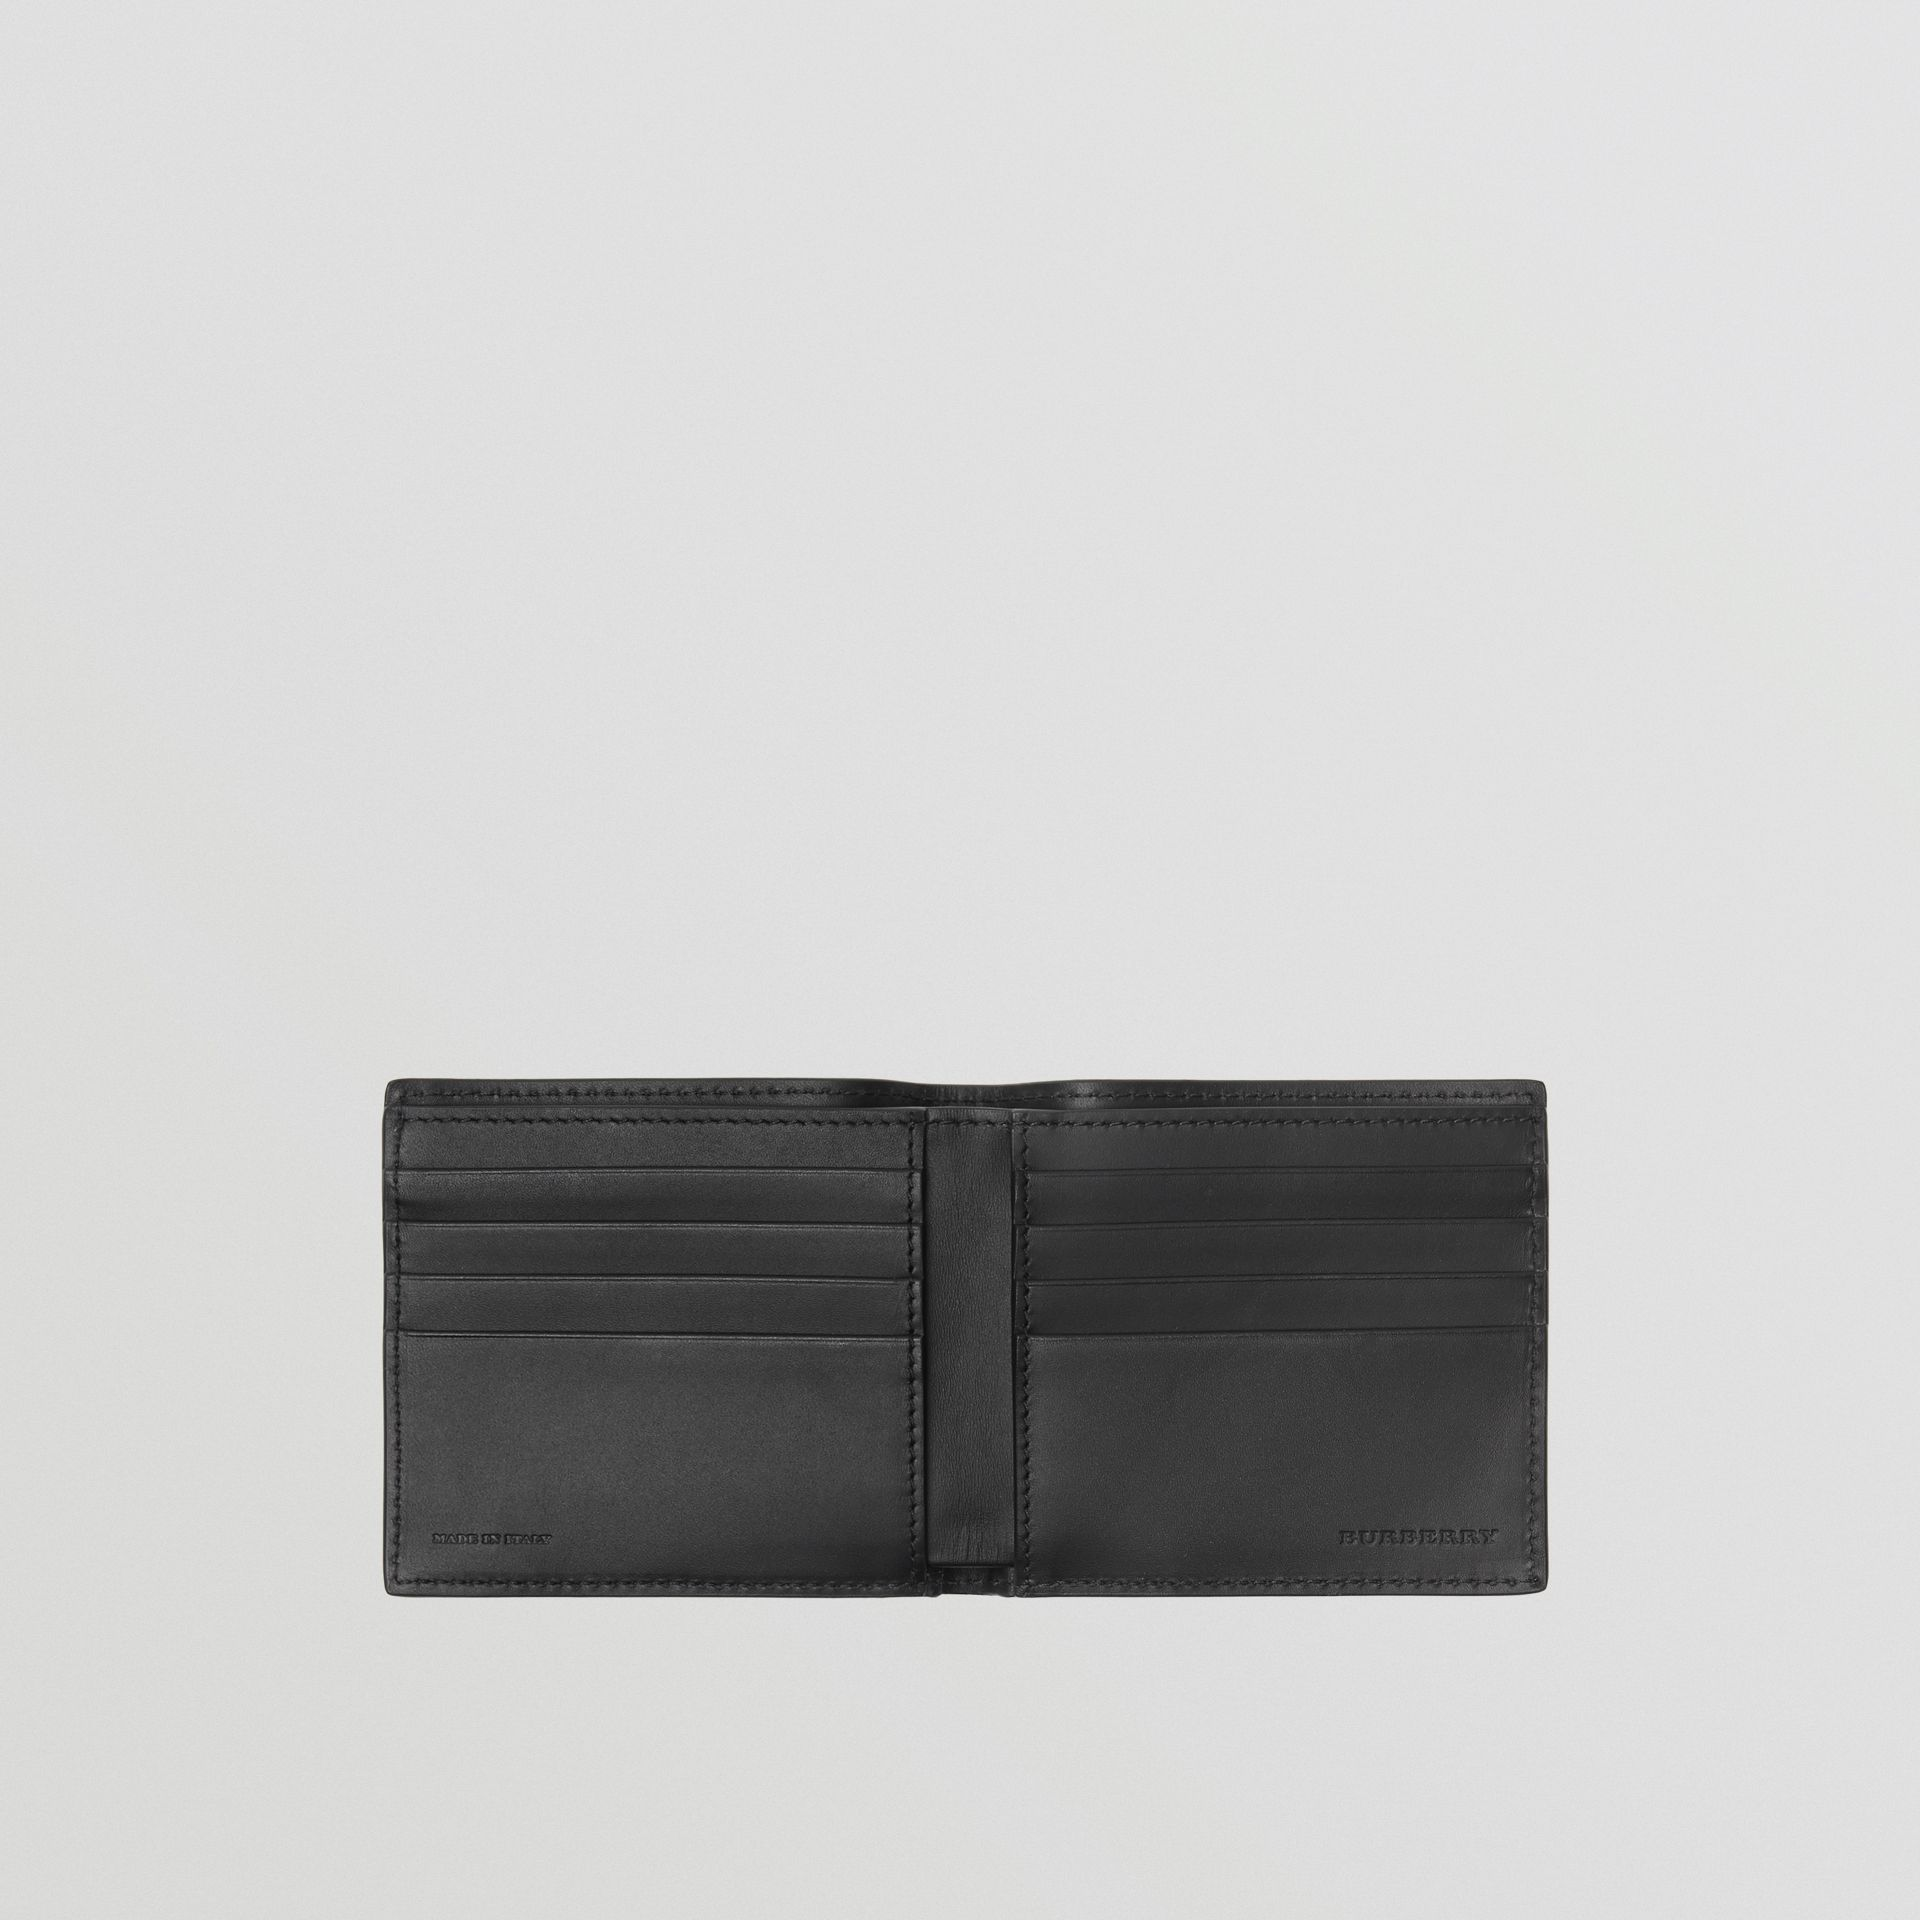 Graffiti Print Leather International Bifold Wallet in Black - Men | Burberry United Kingdom - gallery image 2